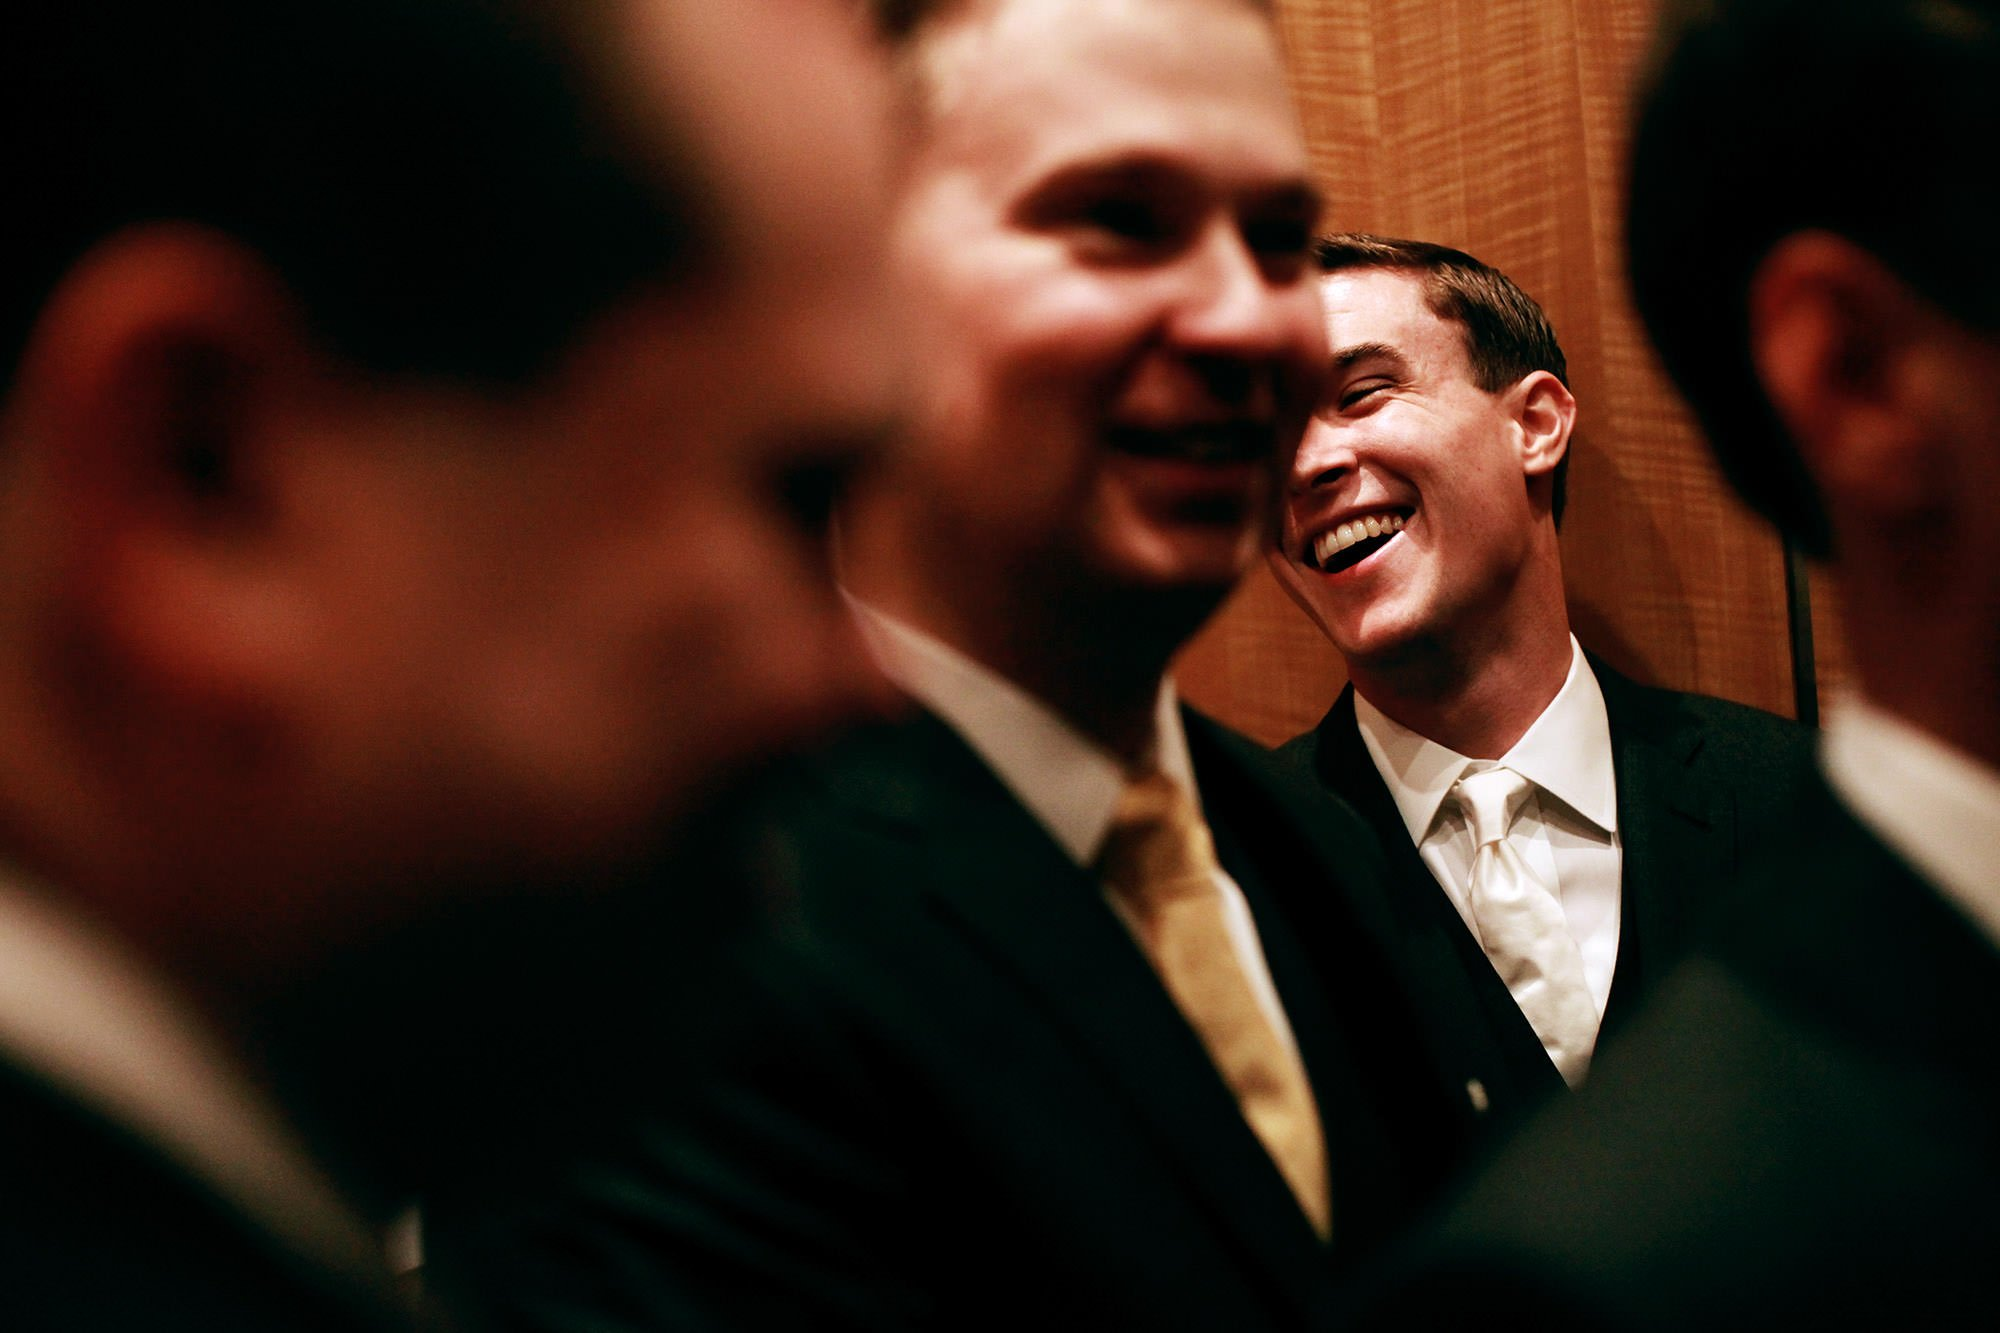 The groom smiles in an elevator on his way to his Hay Adams wedding ceremony.